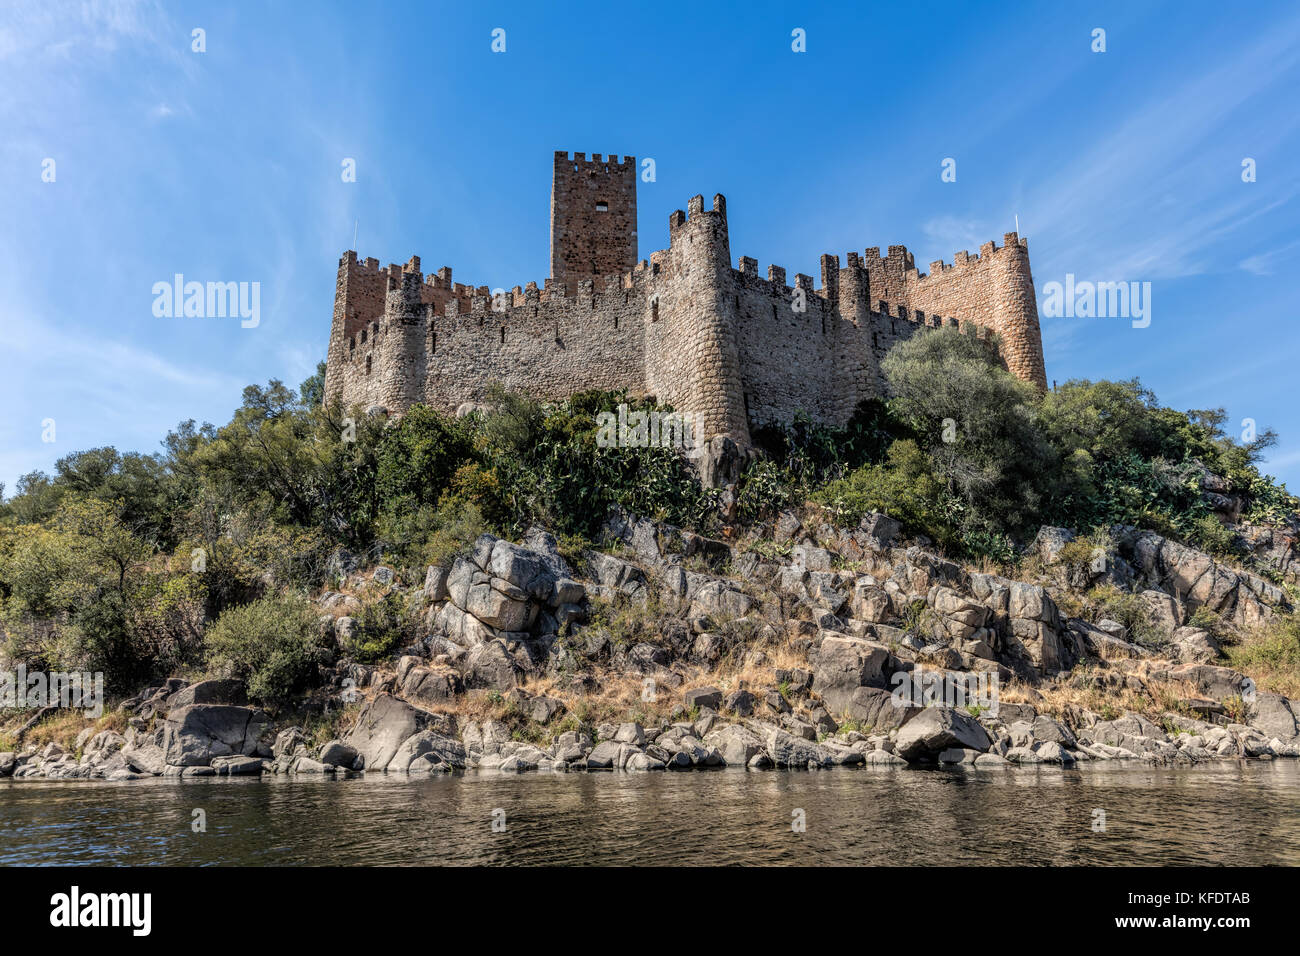 Castle of Almourol in Portugal, initiated the 12th century, located on a small islet in the middle of the Tagus - Stock Image